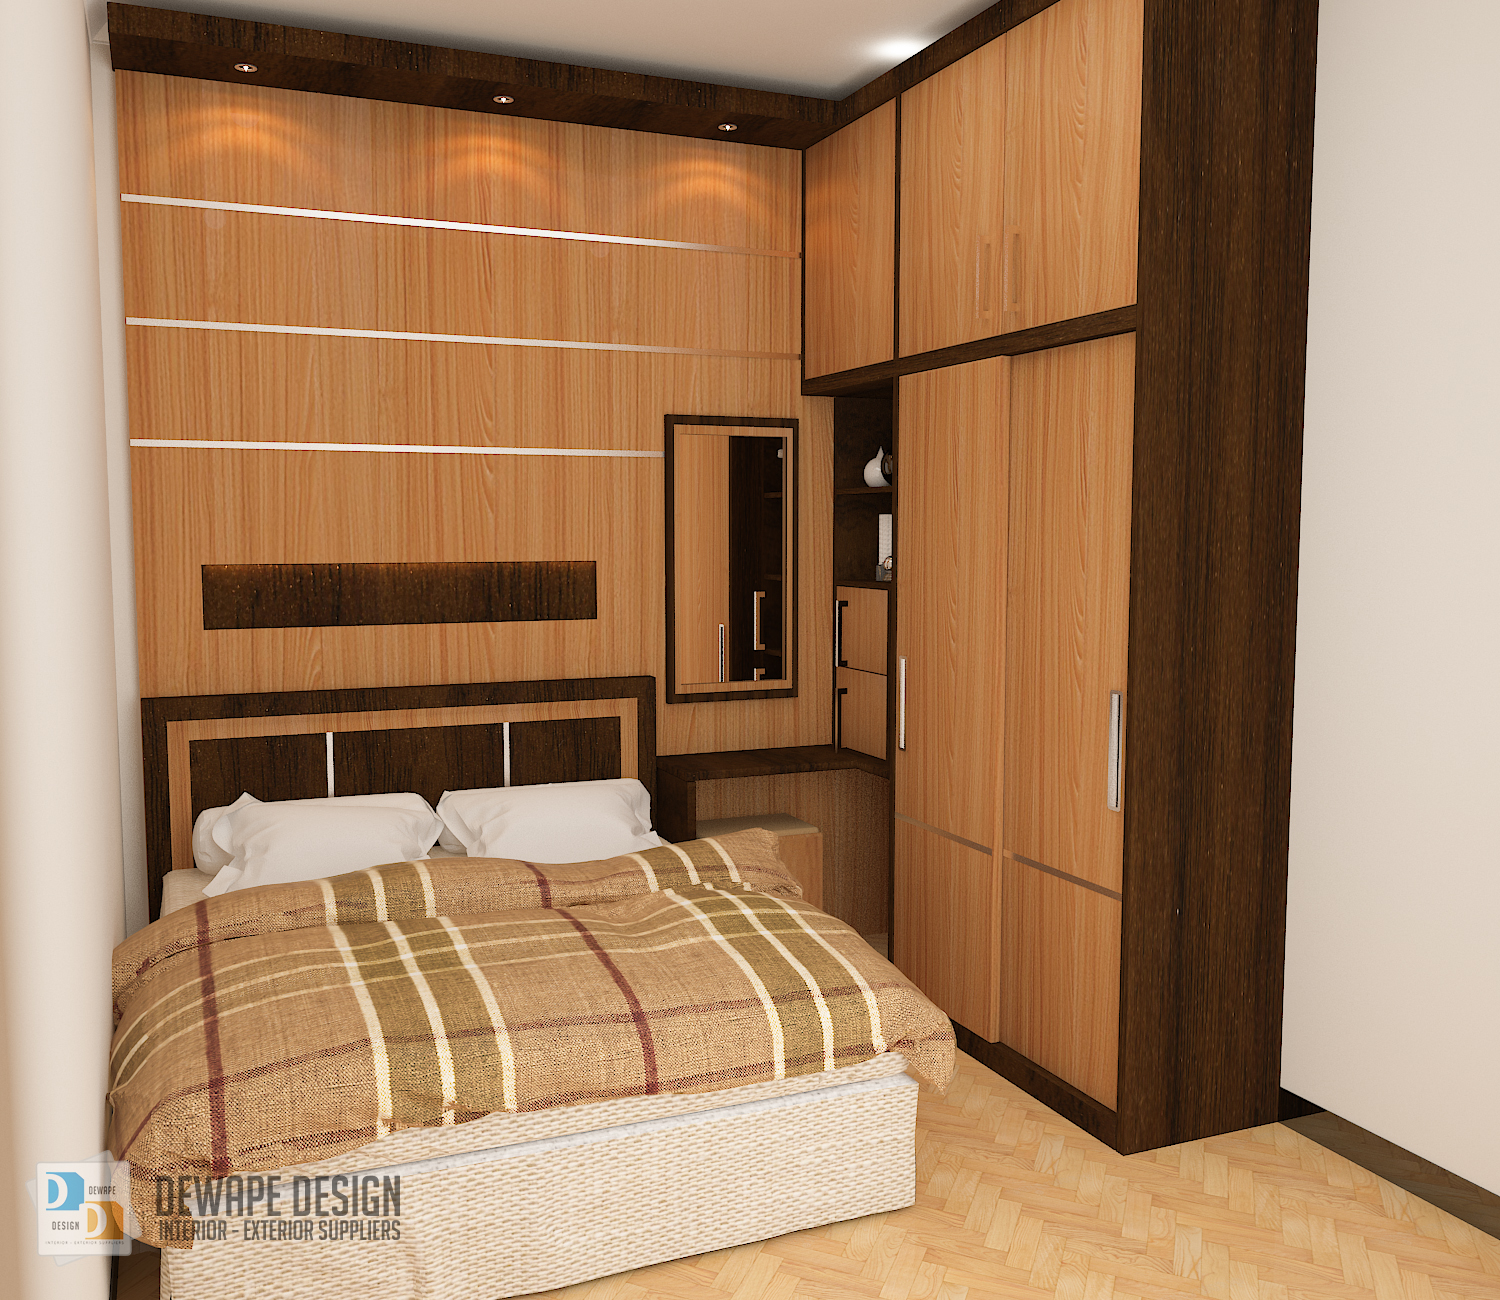 Design Interior Di Malang